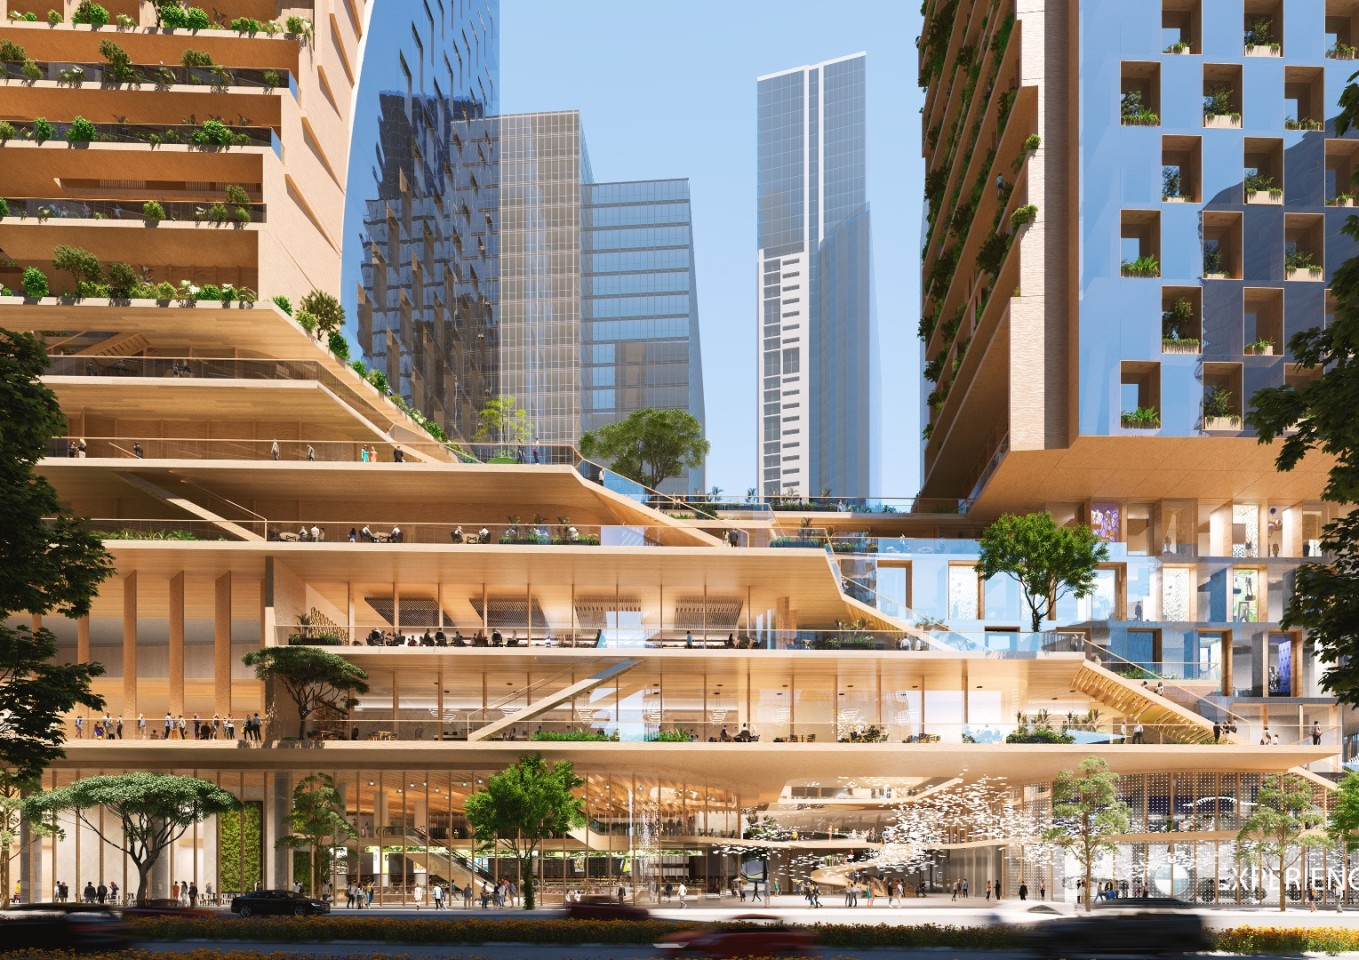 Southbank by Beulah will include apartments, office space, public green spaces, a rooftop sky garden, town hall, wellness precinct, retail space, and more